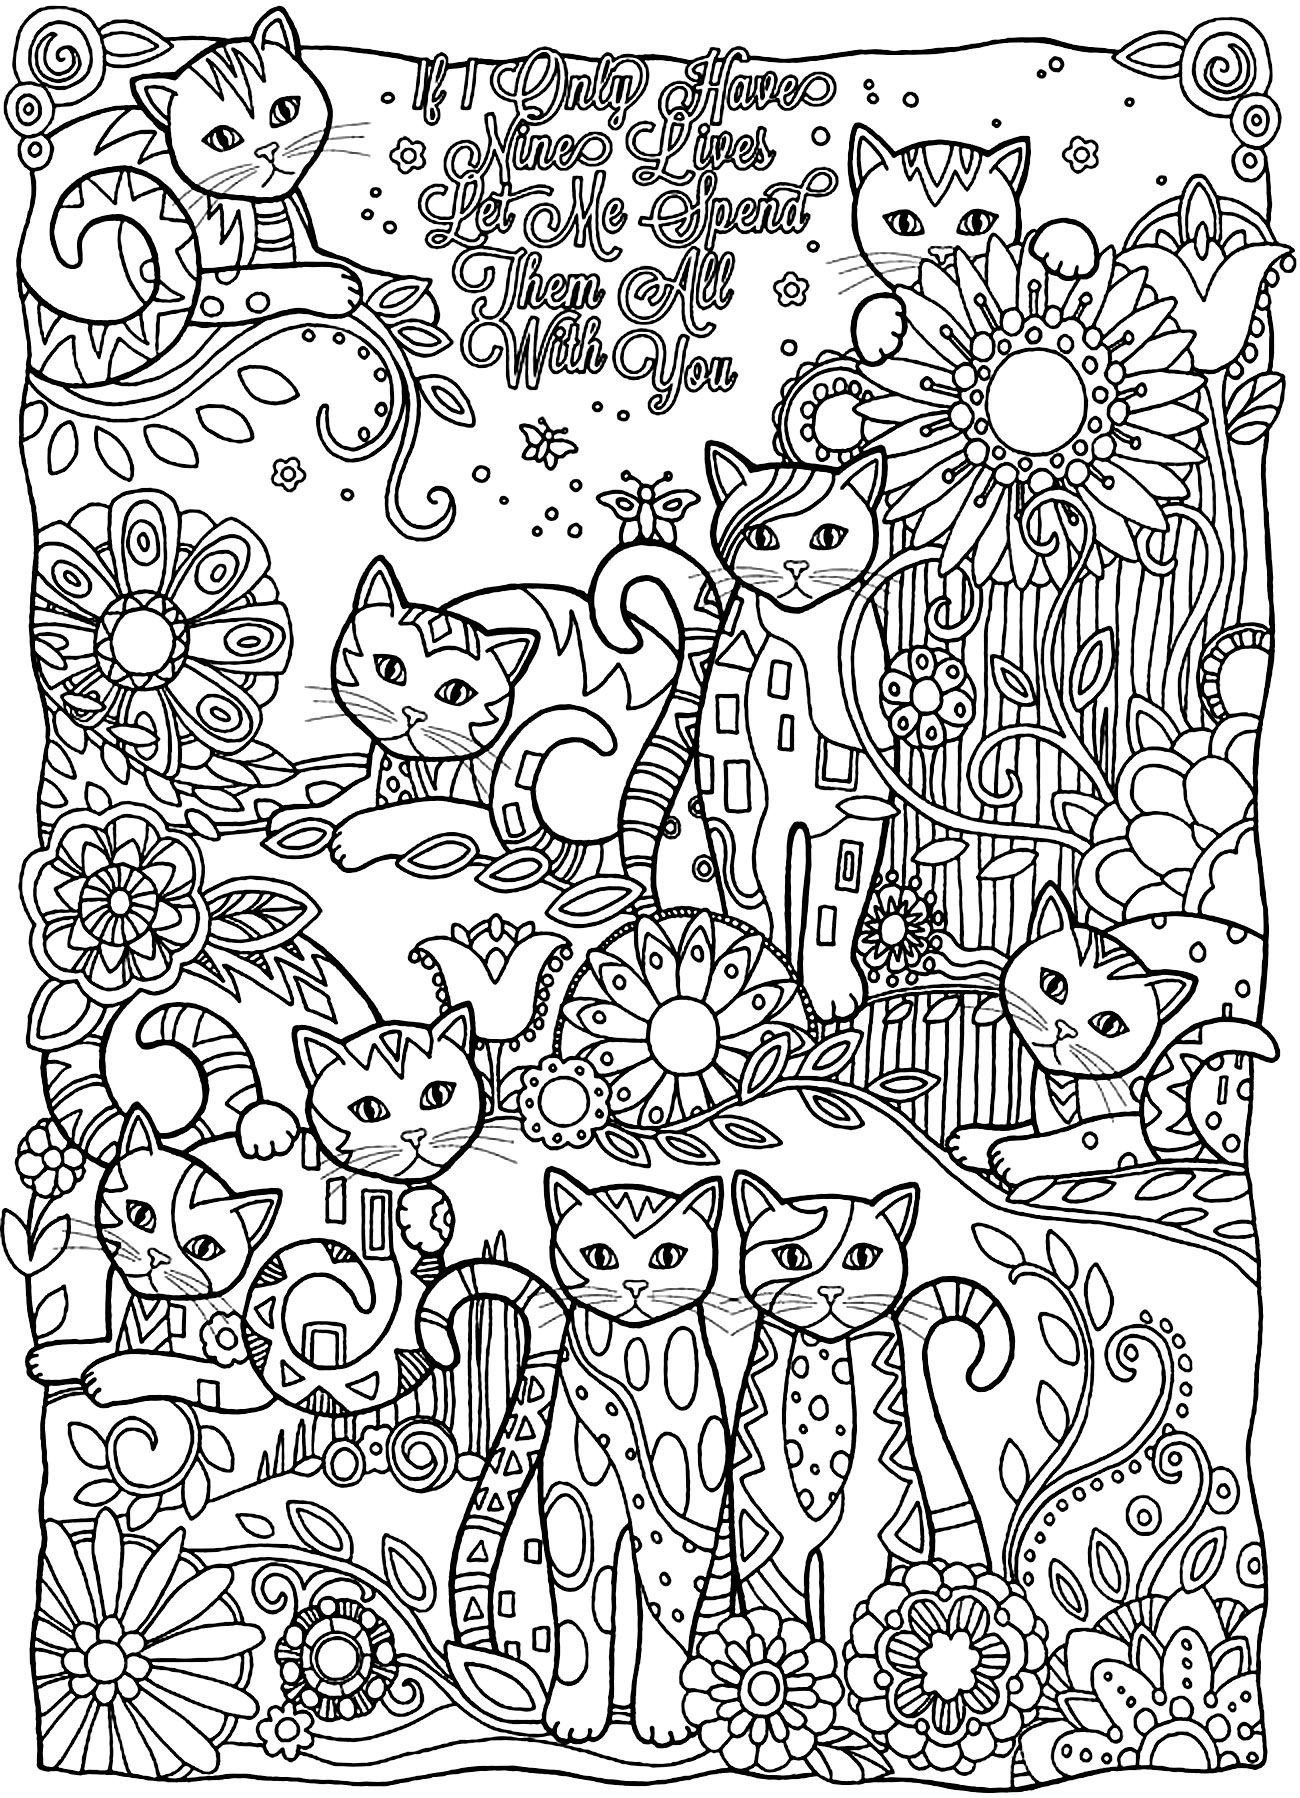 cat coloring for adults best kids adult cute neon color paint setting in acrylic elsa coloring pages Adult Coloring Page Cat